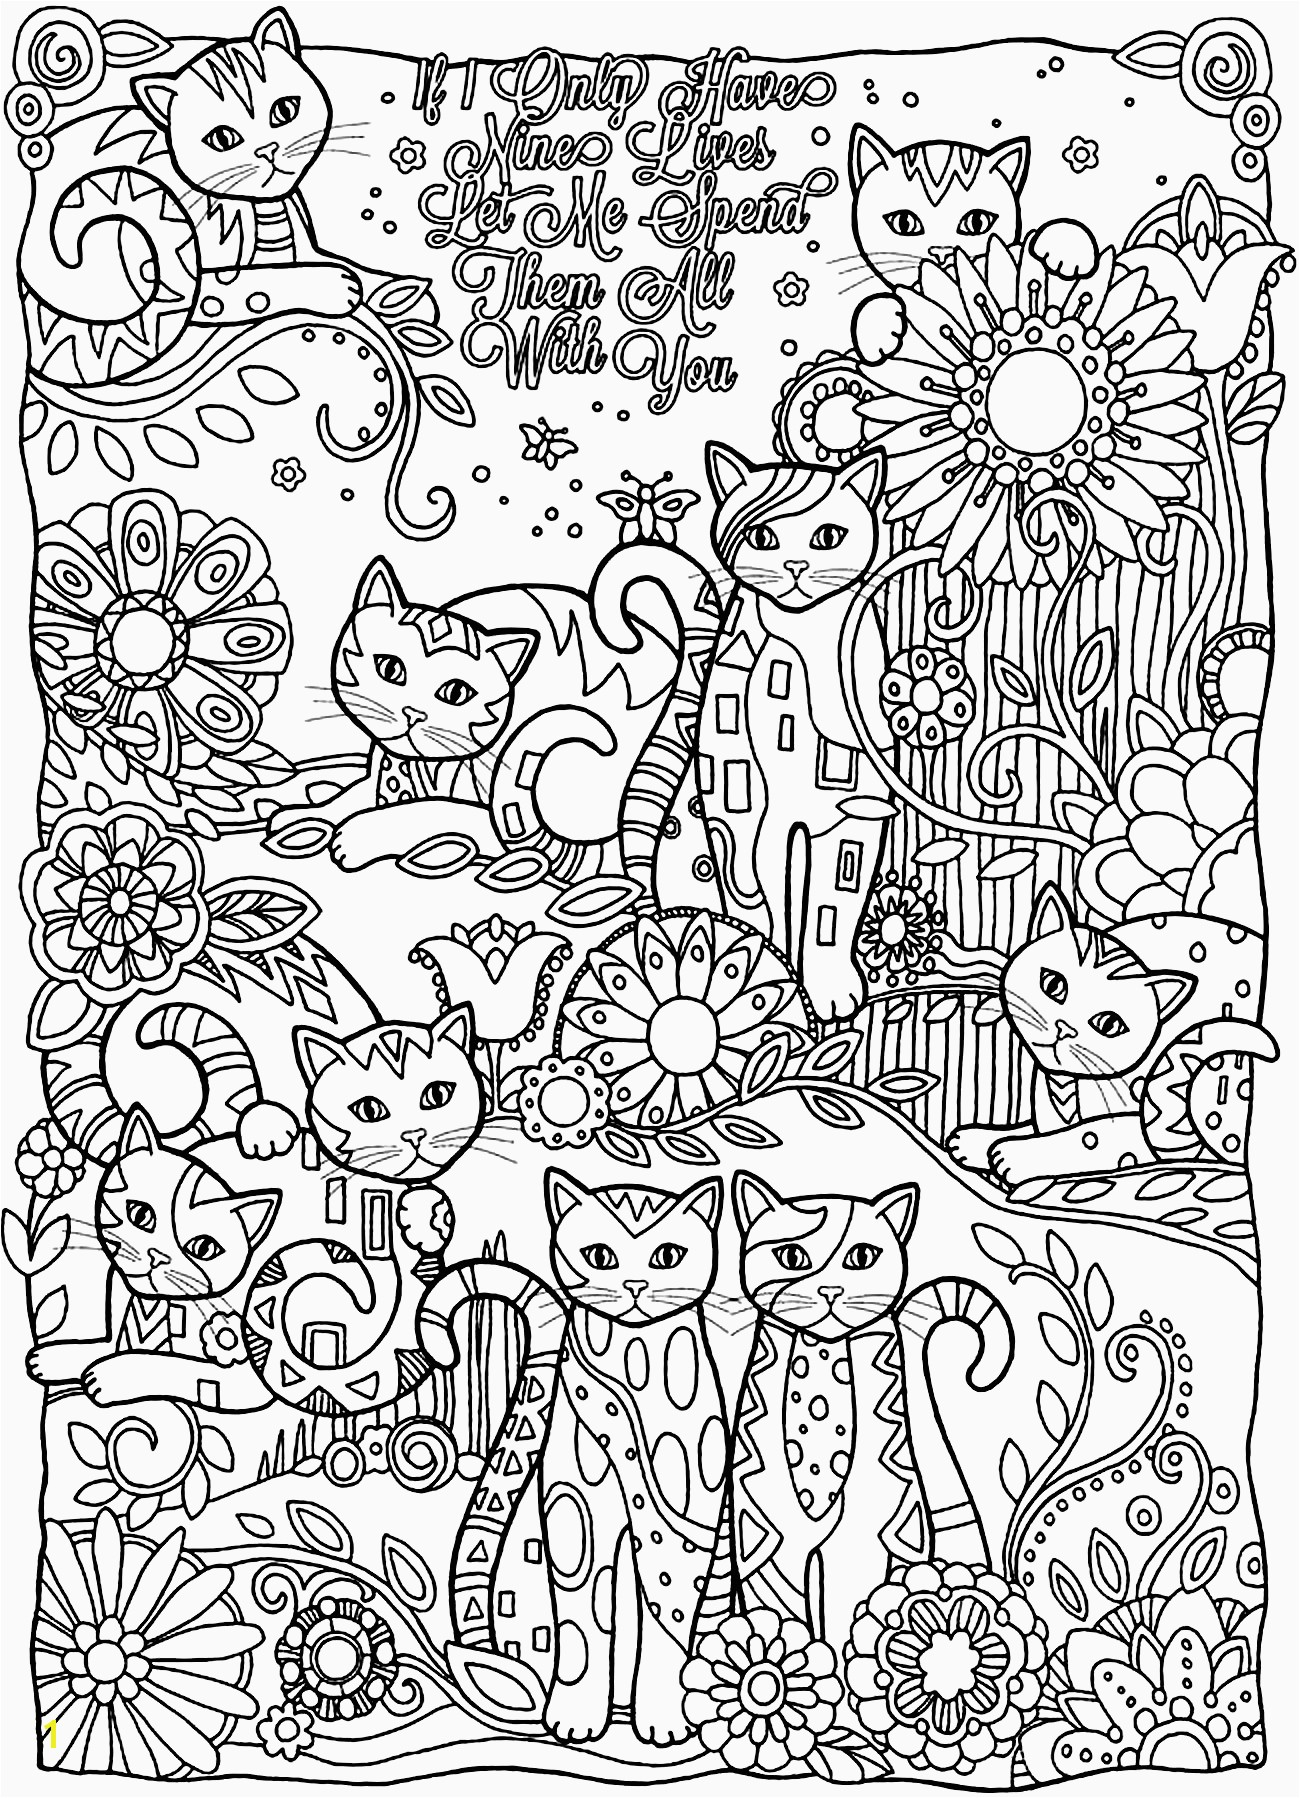 Free Printable Adult Coloring Sheets Lovely Cute Printable Coloring Pages New Printable Od Dog Coloring Pages